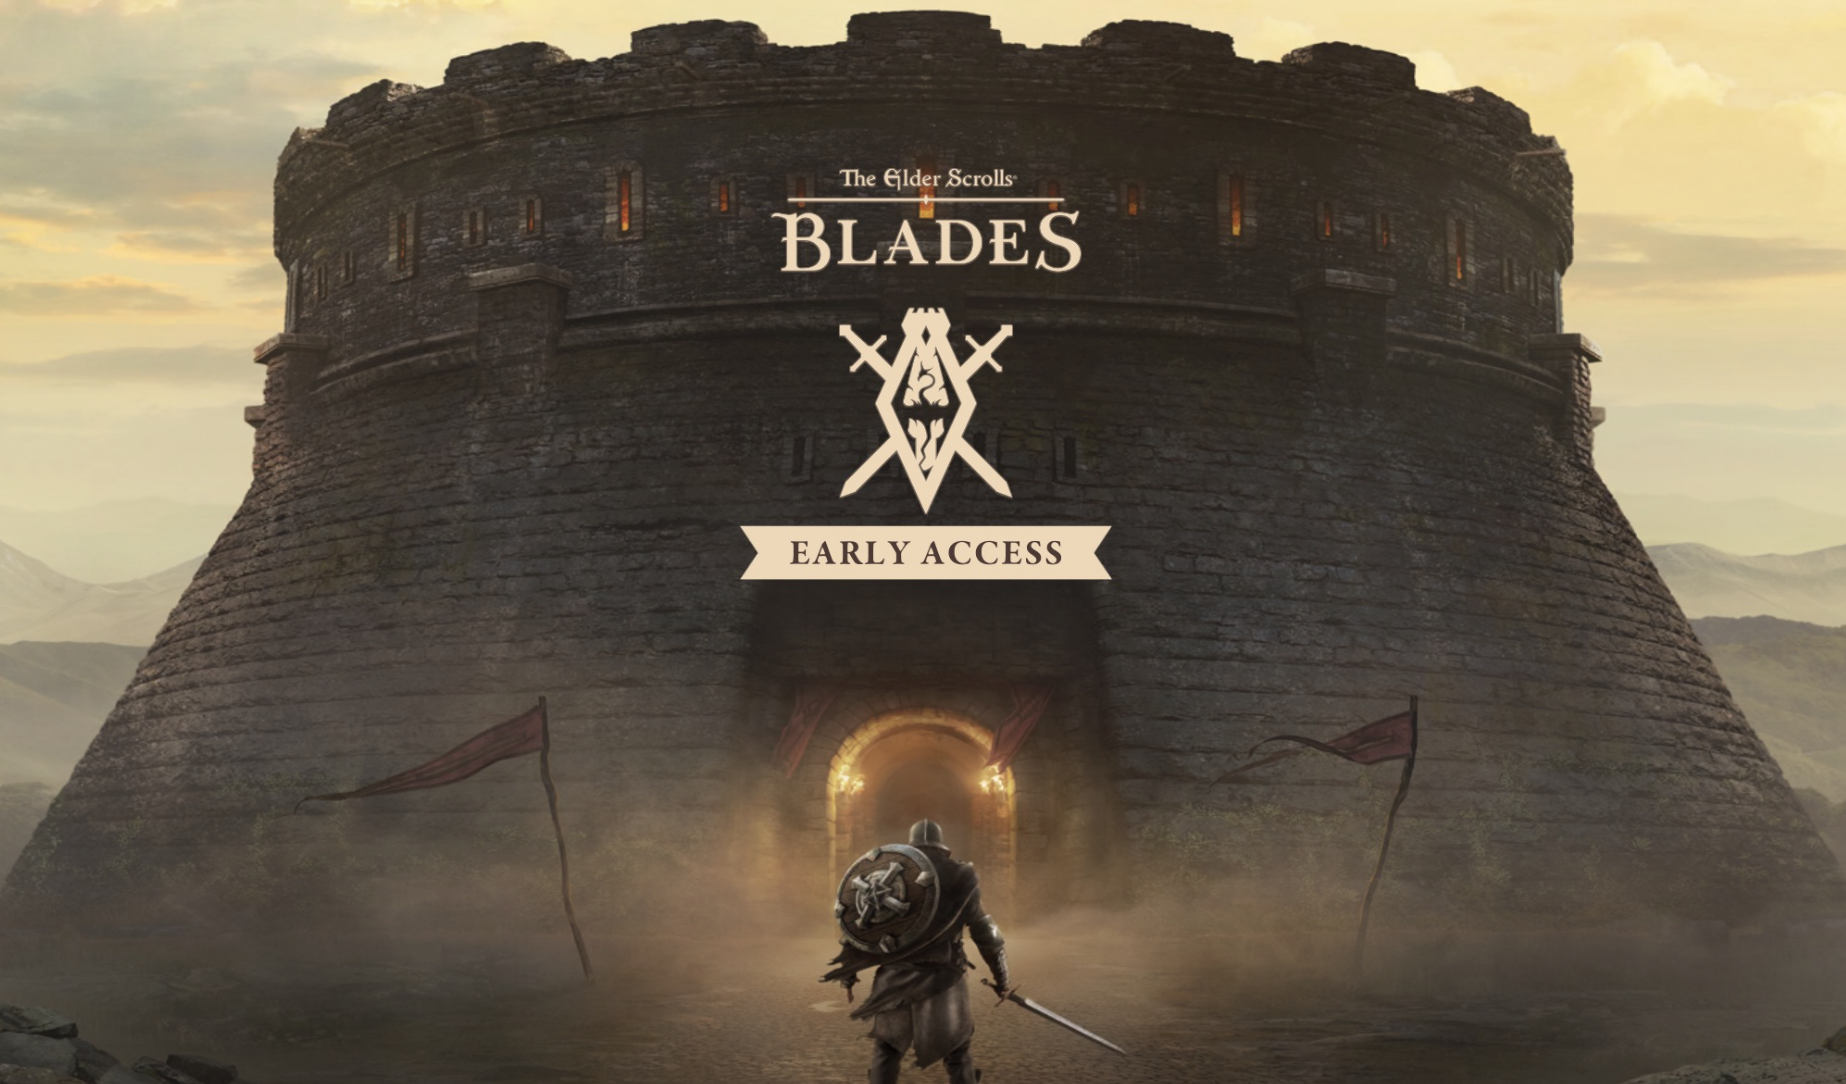 The Elder Scrolls Blades Update 1.5 New Features Arena PvP, Chest Timers Removal, More Loot